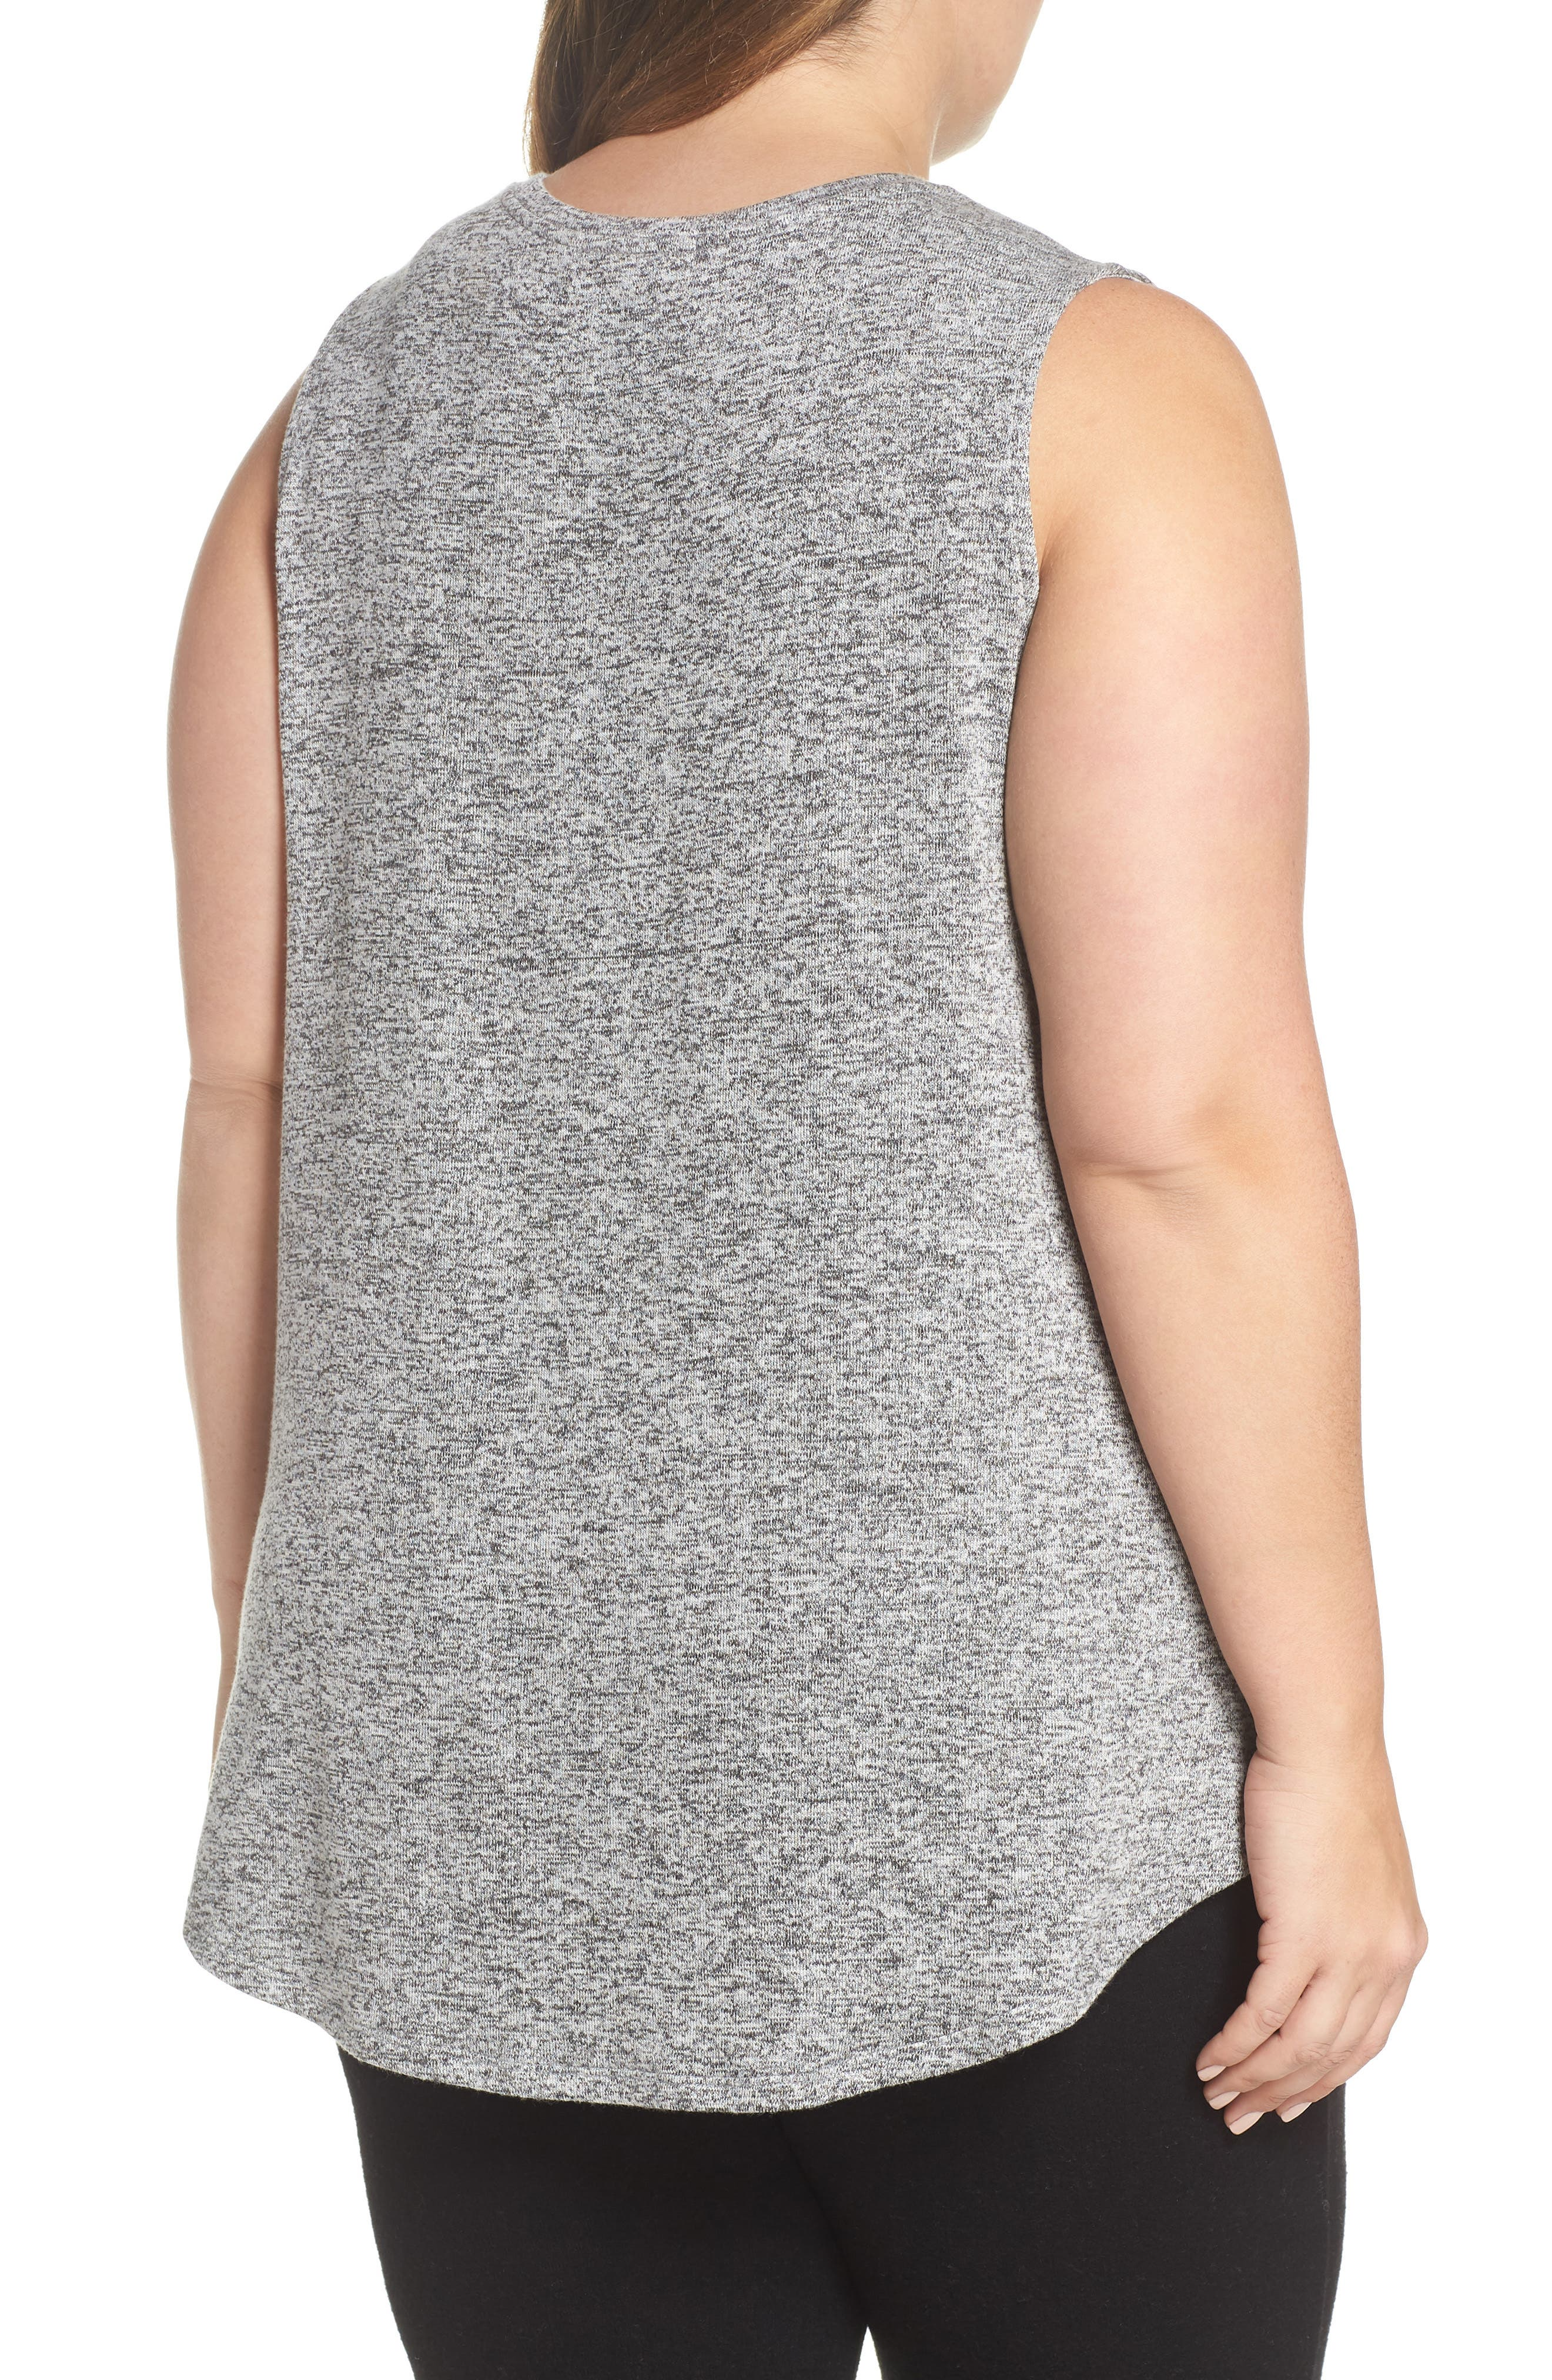 x Living in Yellow Millie Muscle Tank,                             Alternate thumbnail 3, color,                             Heather Grey Marled